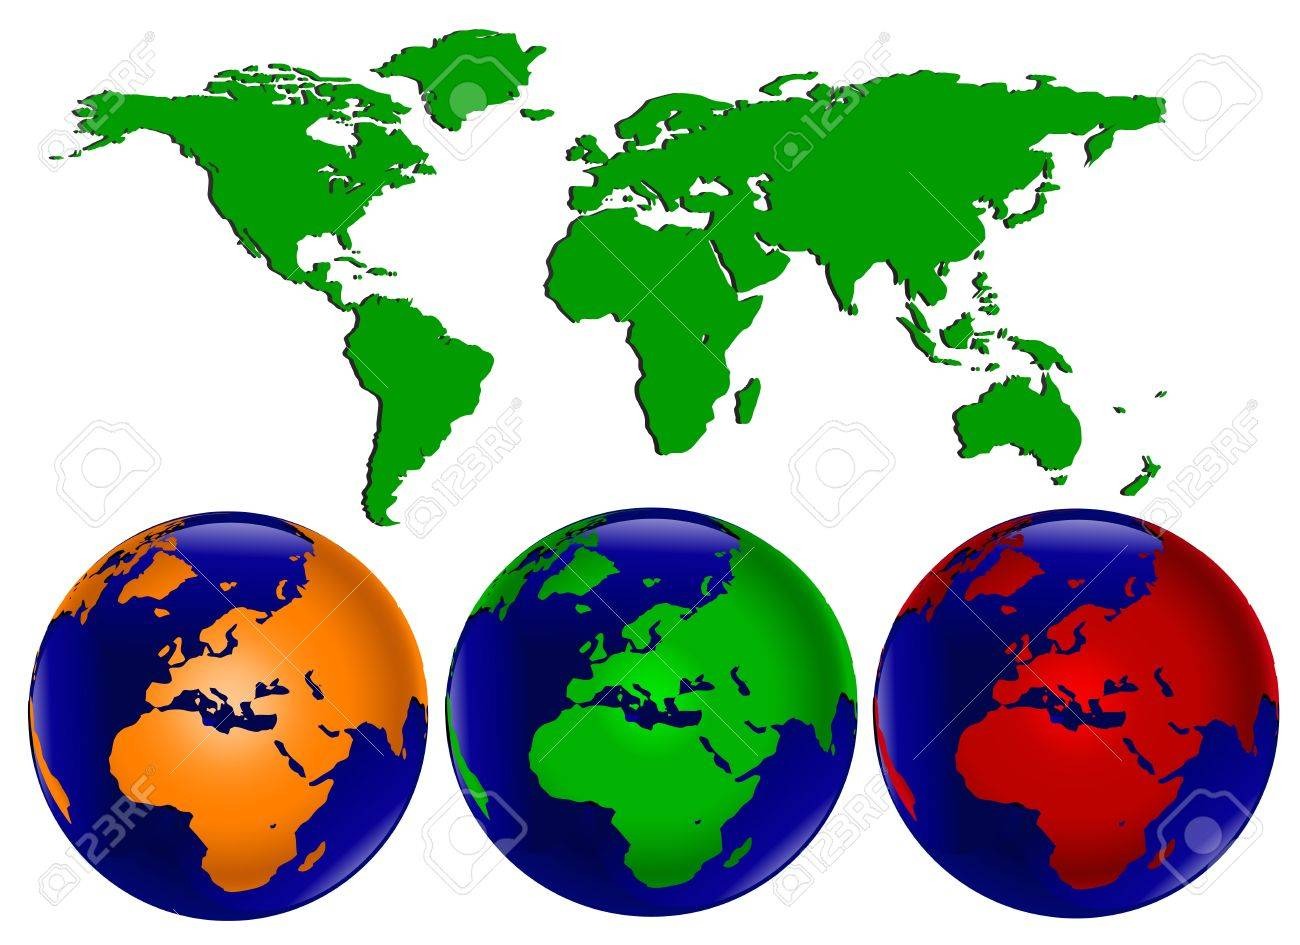 Vector illustration with three different coloured world globes vector vector illustration with three different coloured world globes with europe and africa facing forward and a map of the world which can be separated gumiabroncs Choice Image